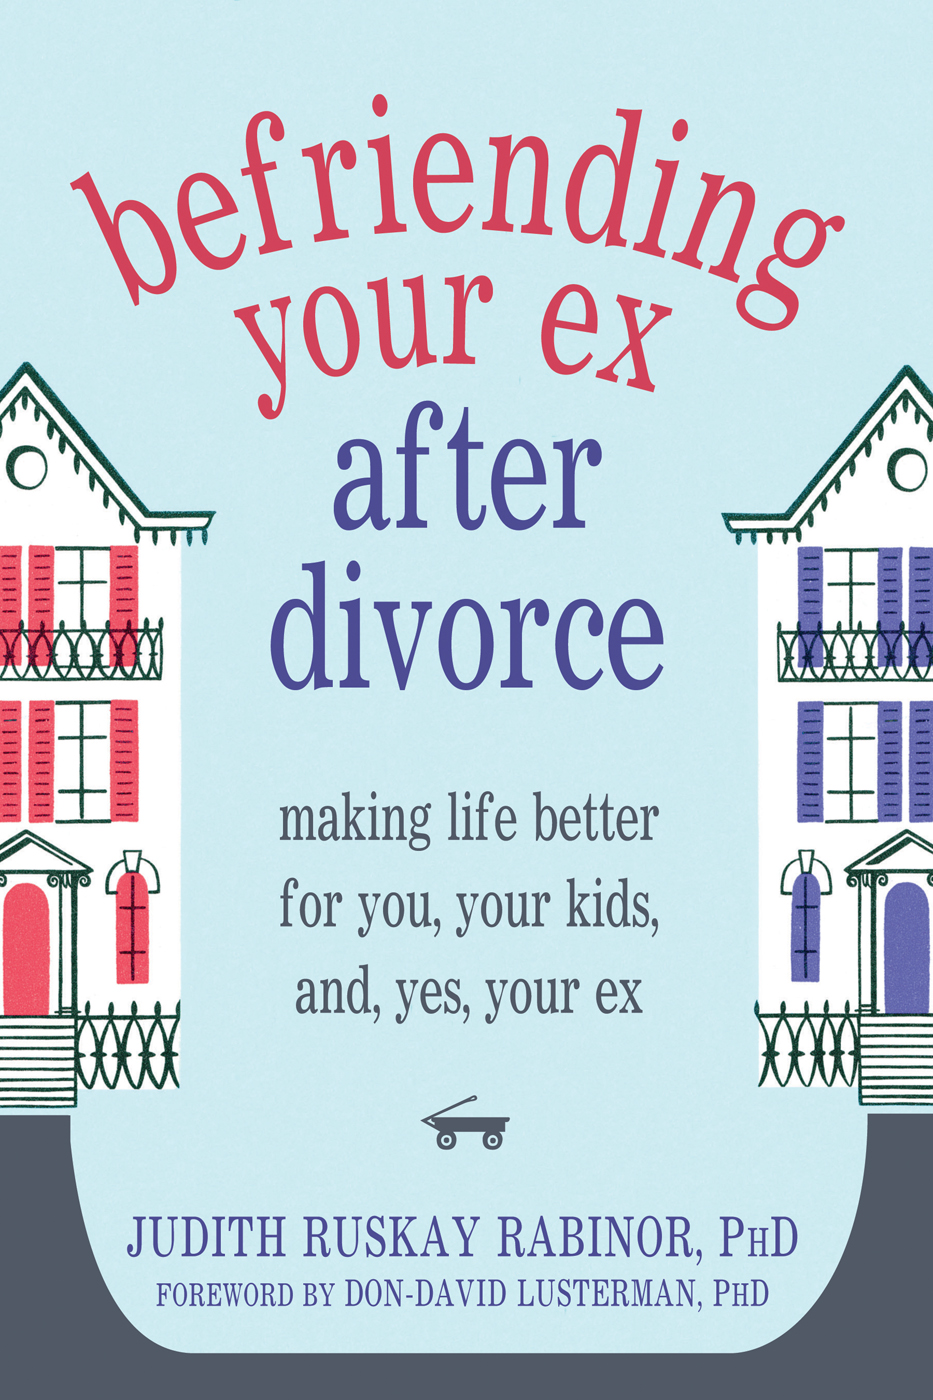 Befriending Your Ex after Divorce By: Judith Ruskay Rabinor, PhD